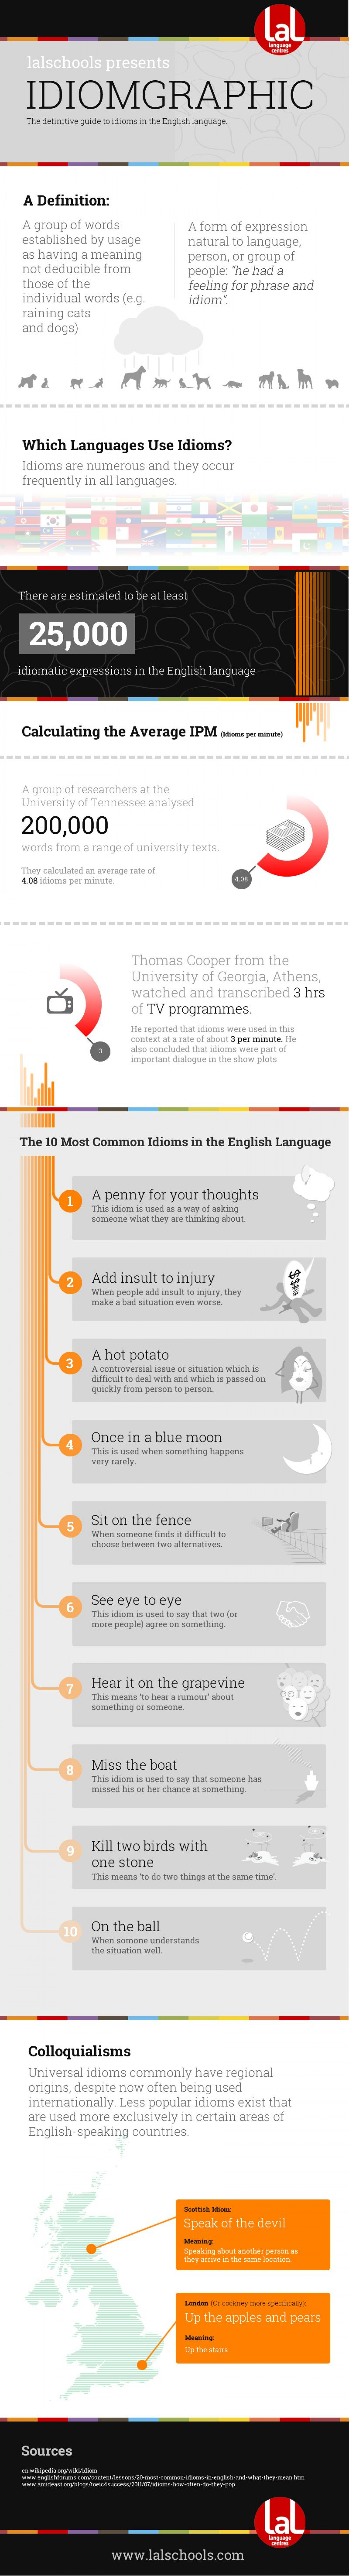 The Idiomgraphic Infographic